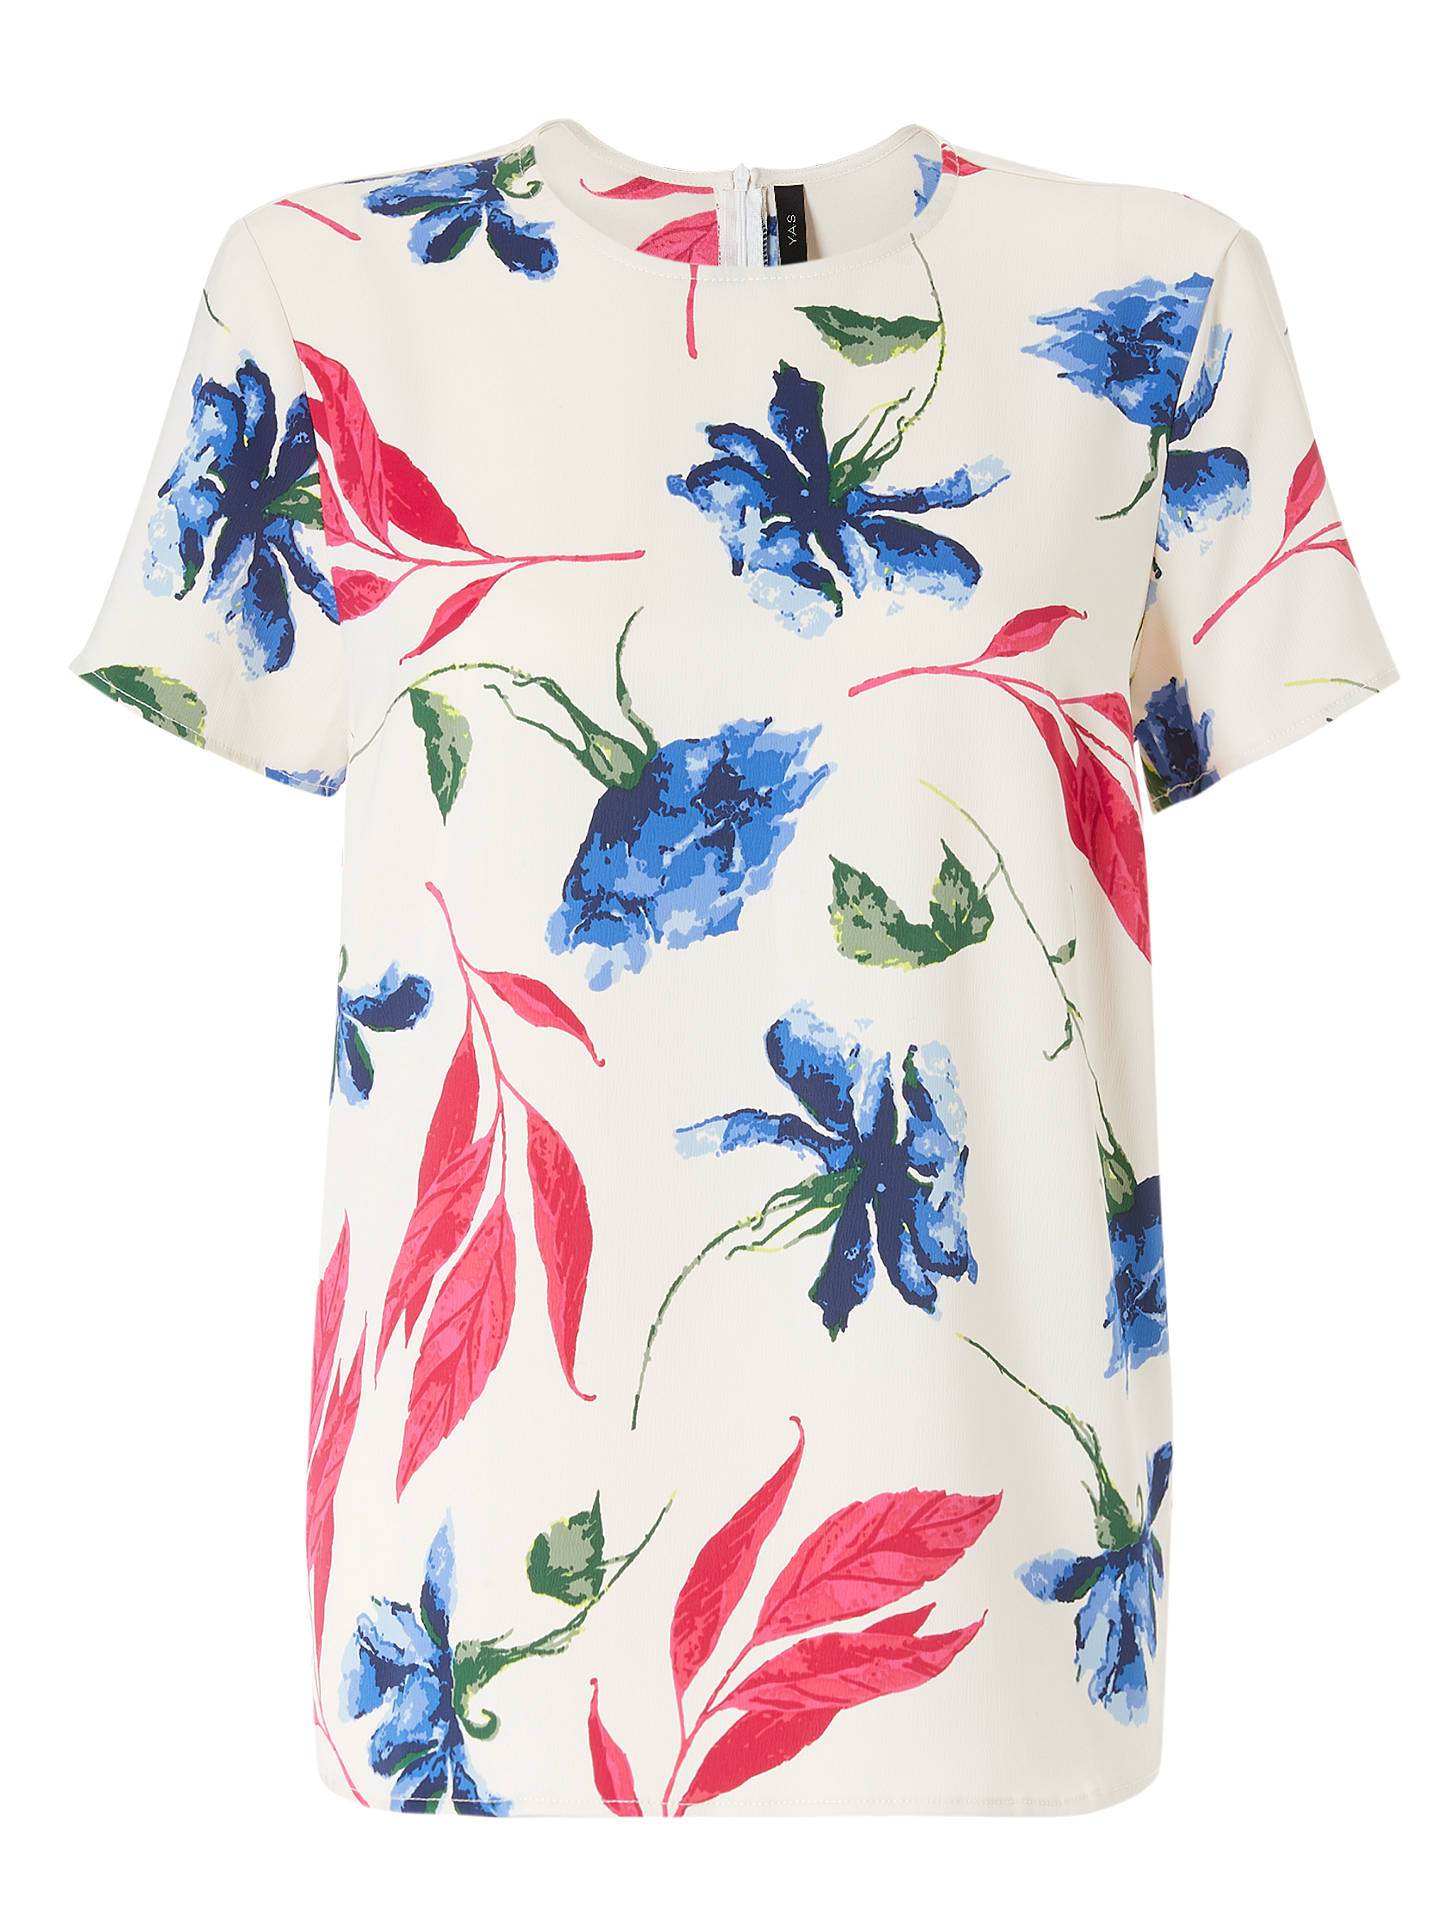 BuyY.A.S Yasblur Short Sleeve Top, Multi, L Online at johnlewis.com